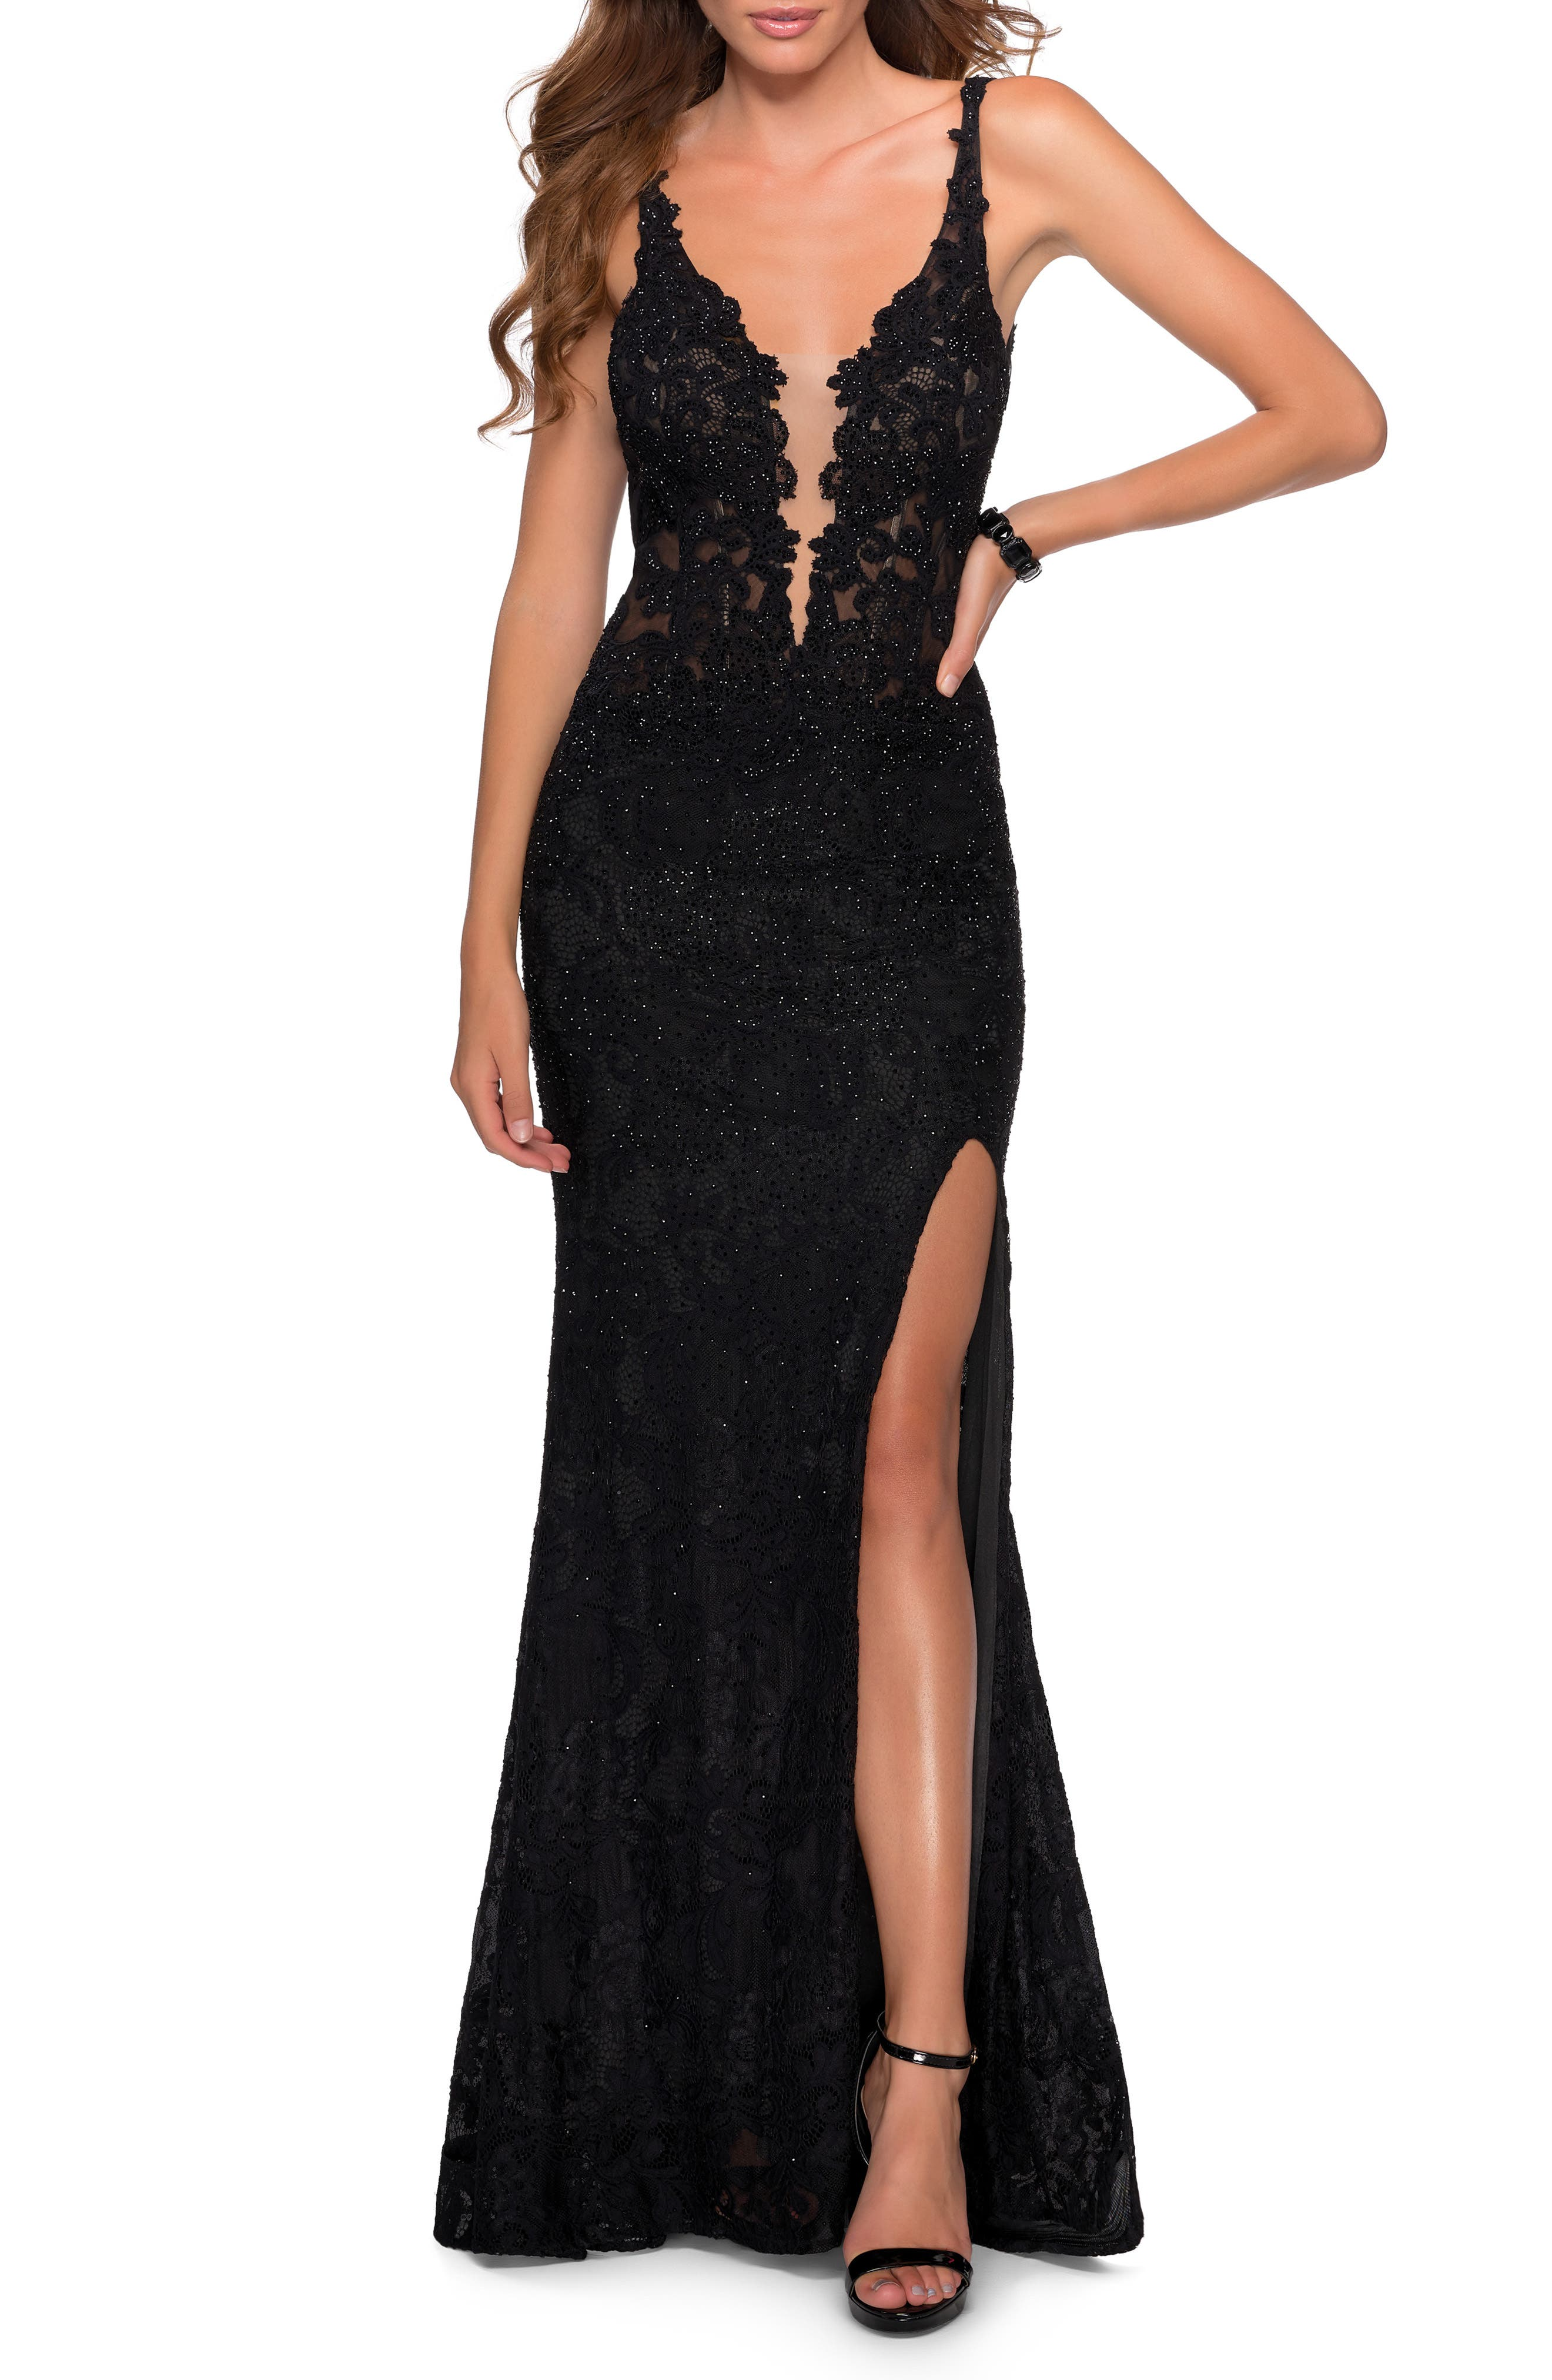 Steal the spotlight with sparkle and allure in this stunning lace gown featuring a plunging neckline, a leg-flaunting slit and spine-framing back cutouts. Style Name: La Femme Sparkle Lace Plunge Neck Gown. Style Number: 6170000. Available in stores.